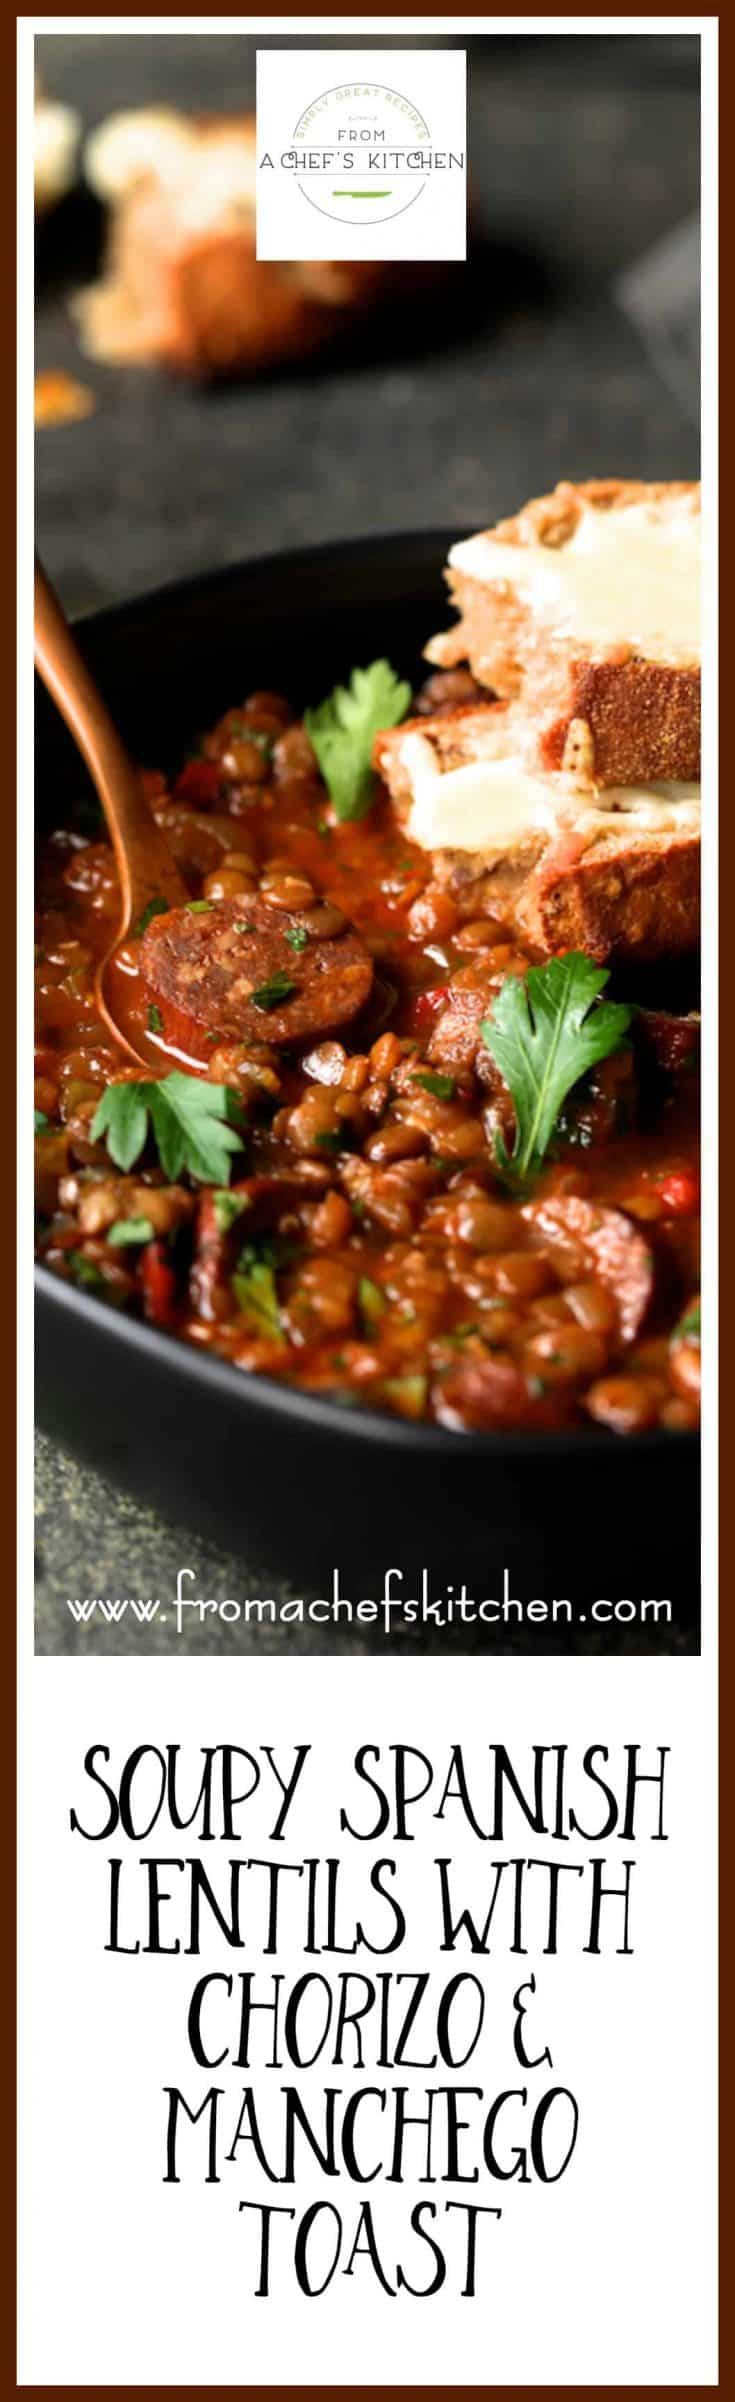 Soupy Spanish Lentils with Chorizo and Manchego Toast - Braised lentils with spicy chorizo sausage kicked up with red wine and Spanish spices and served with crusty bread topped with melted Manchego cheese is perfect winter comfort food!  #lentils #chorizo #manchego #spanish